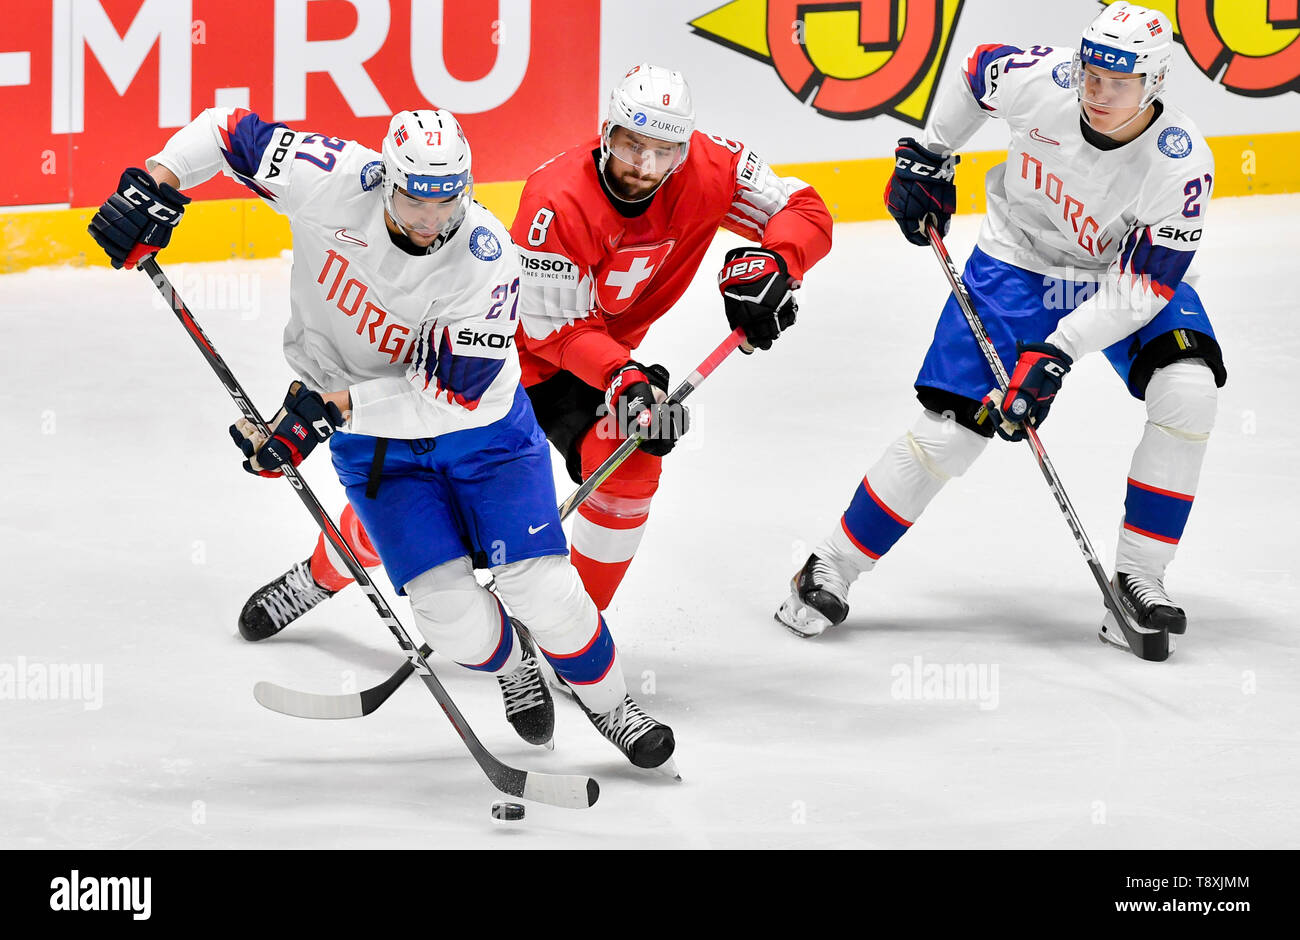 Bratislava, Slovakia. 15th May, 2019. L-R Andreas Martinsen (NOR), Vincent Praplan (CH) and Christian Bull (NOR) in action during the match between Switzerland and Norway within the 2019 IIHF World Championship in Bratislava, Slovakia, on May 15, 2019. Credit: Vit Simanek/CTK Photo/Alamy Live News Stock Photo